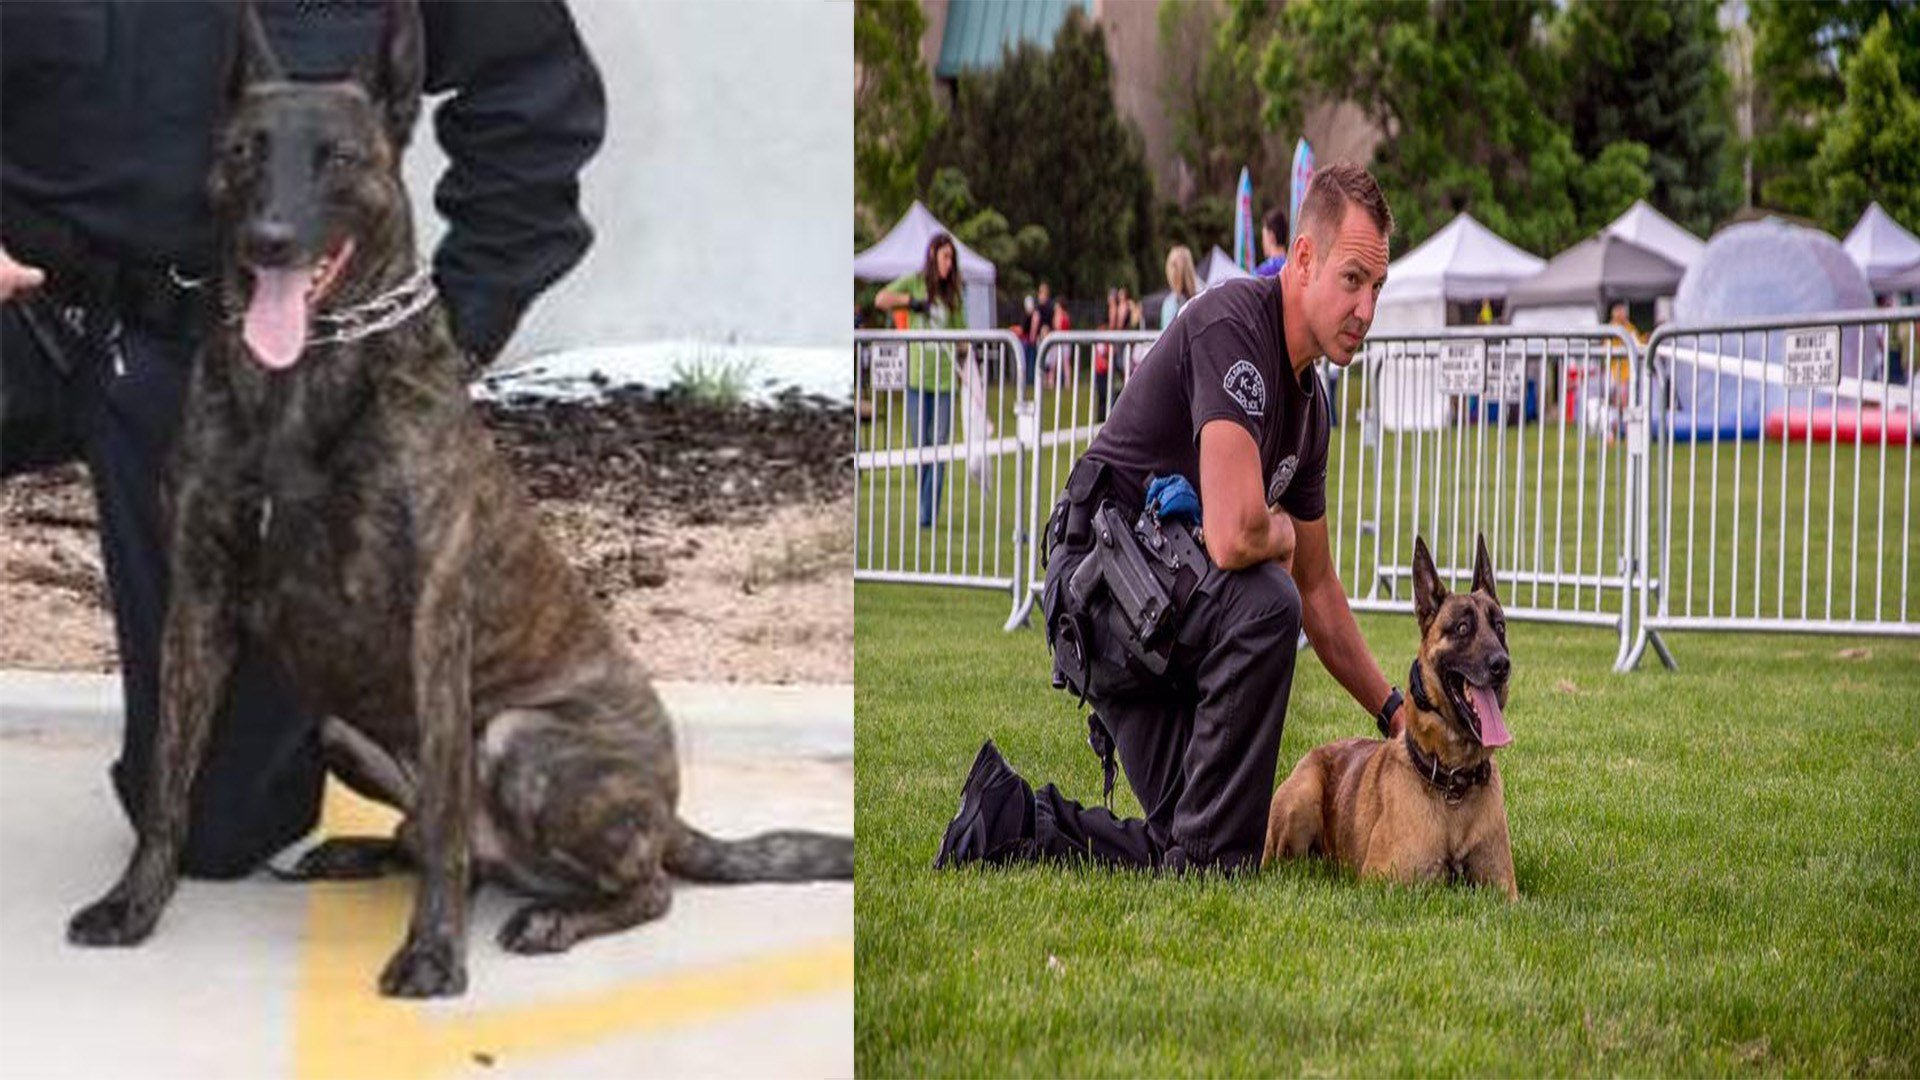 (Photo Courtesy: Colorado Springs K-9 Unit)